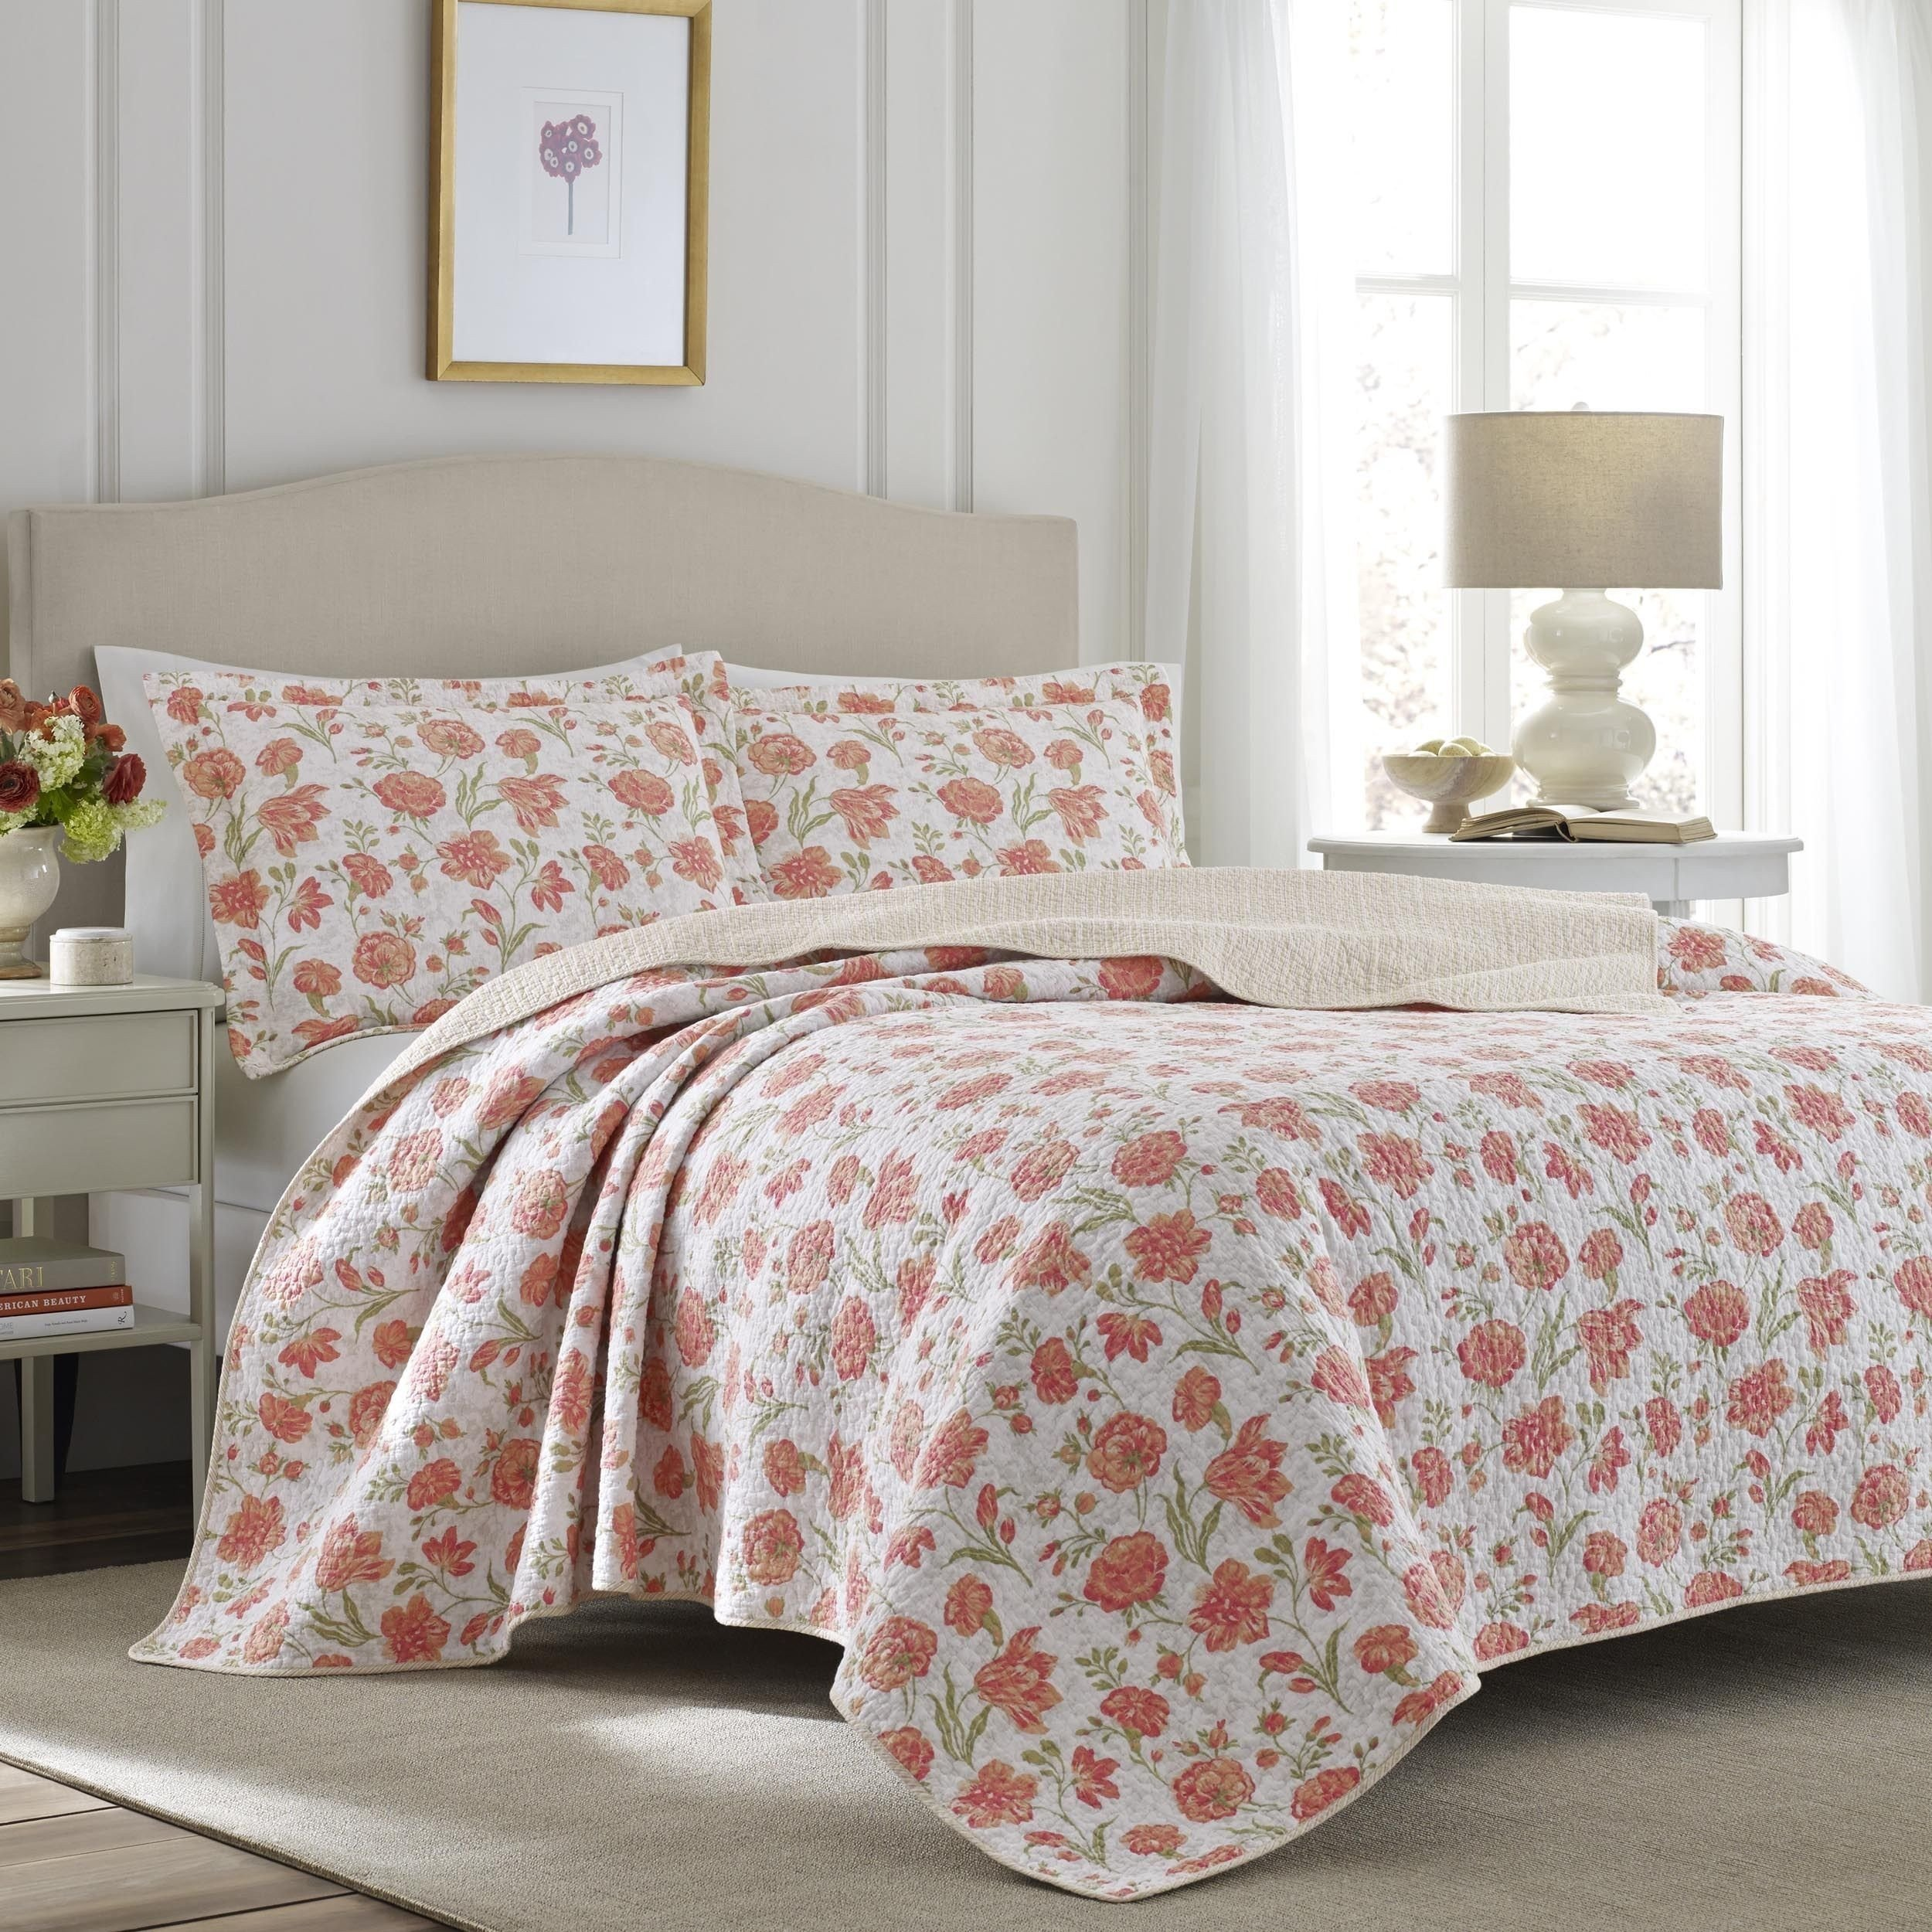 Laura ashley Bedroom Set Awesome Laura ashley Cadence Apricot Quilt Set